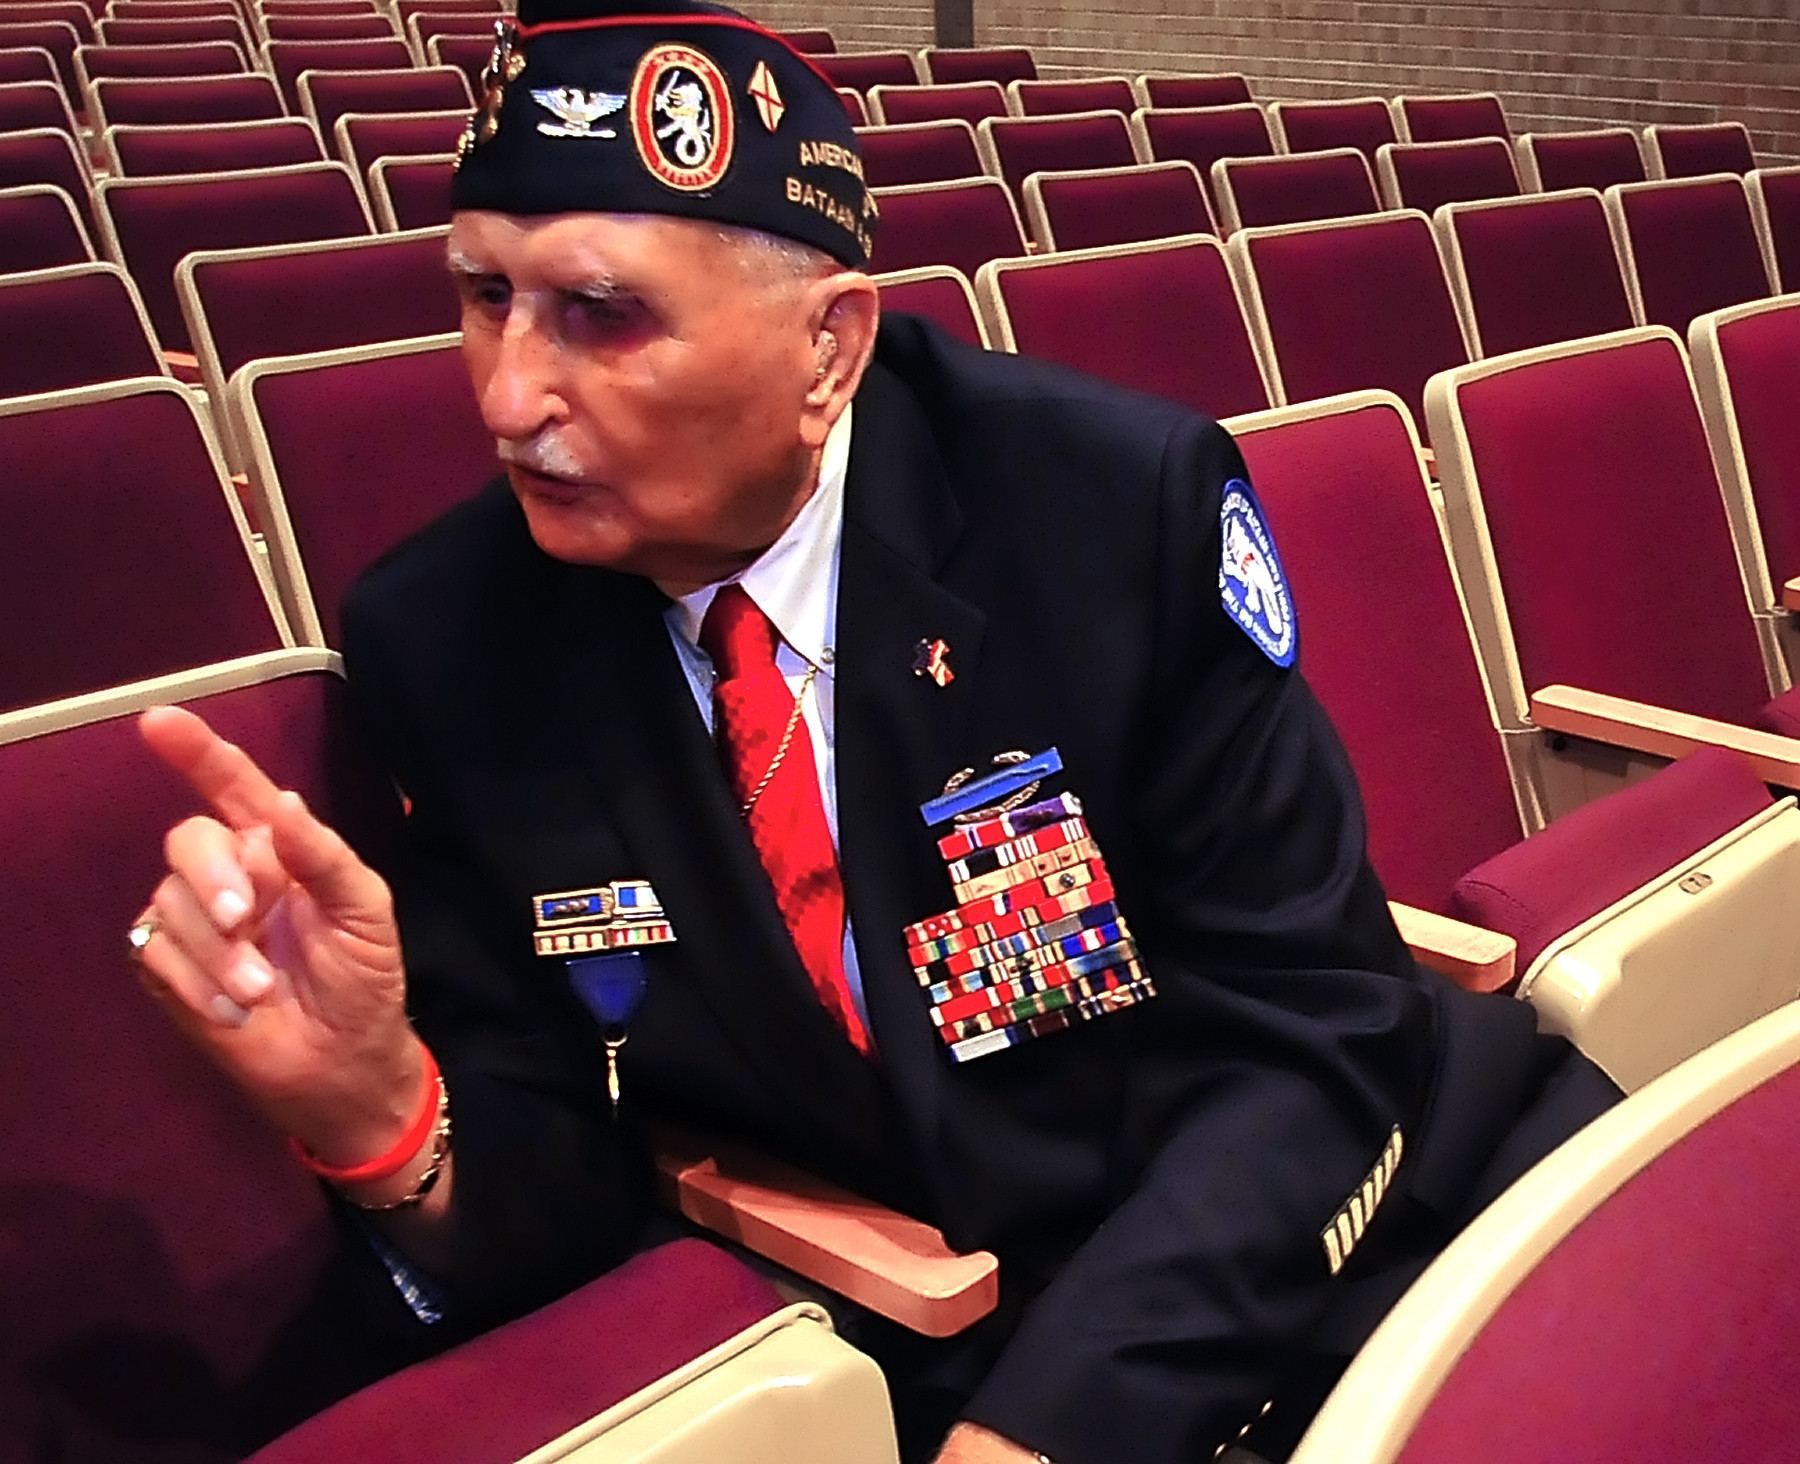 Col. Glenn Frazier describes his military experiences Friday at Greencastle-Antrim High School. In World War II Frazier fought in the Phillipines, survived the Bataan death march, three years of imprisonment and torture in Japanese prison camps.